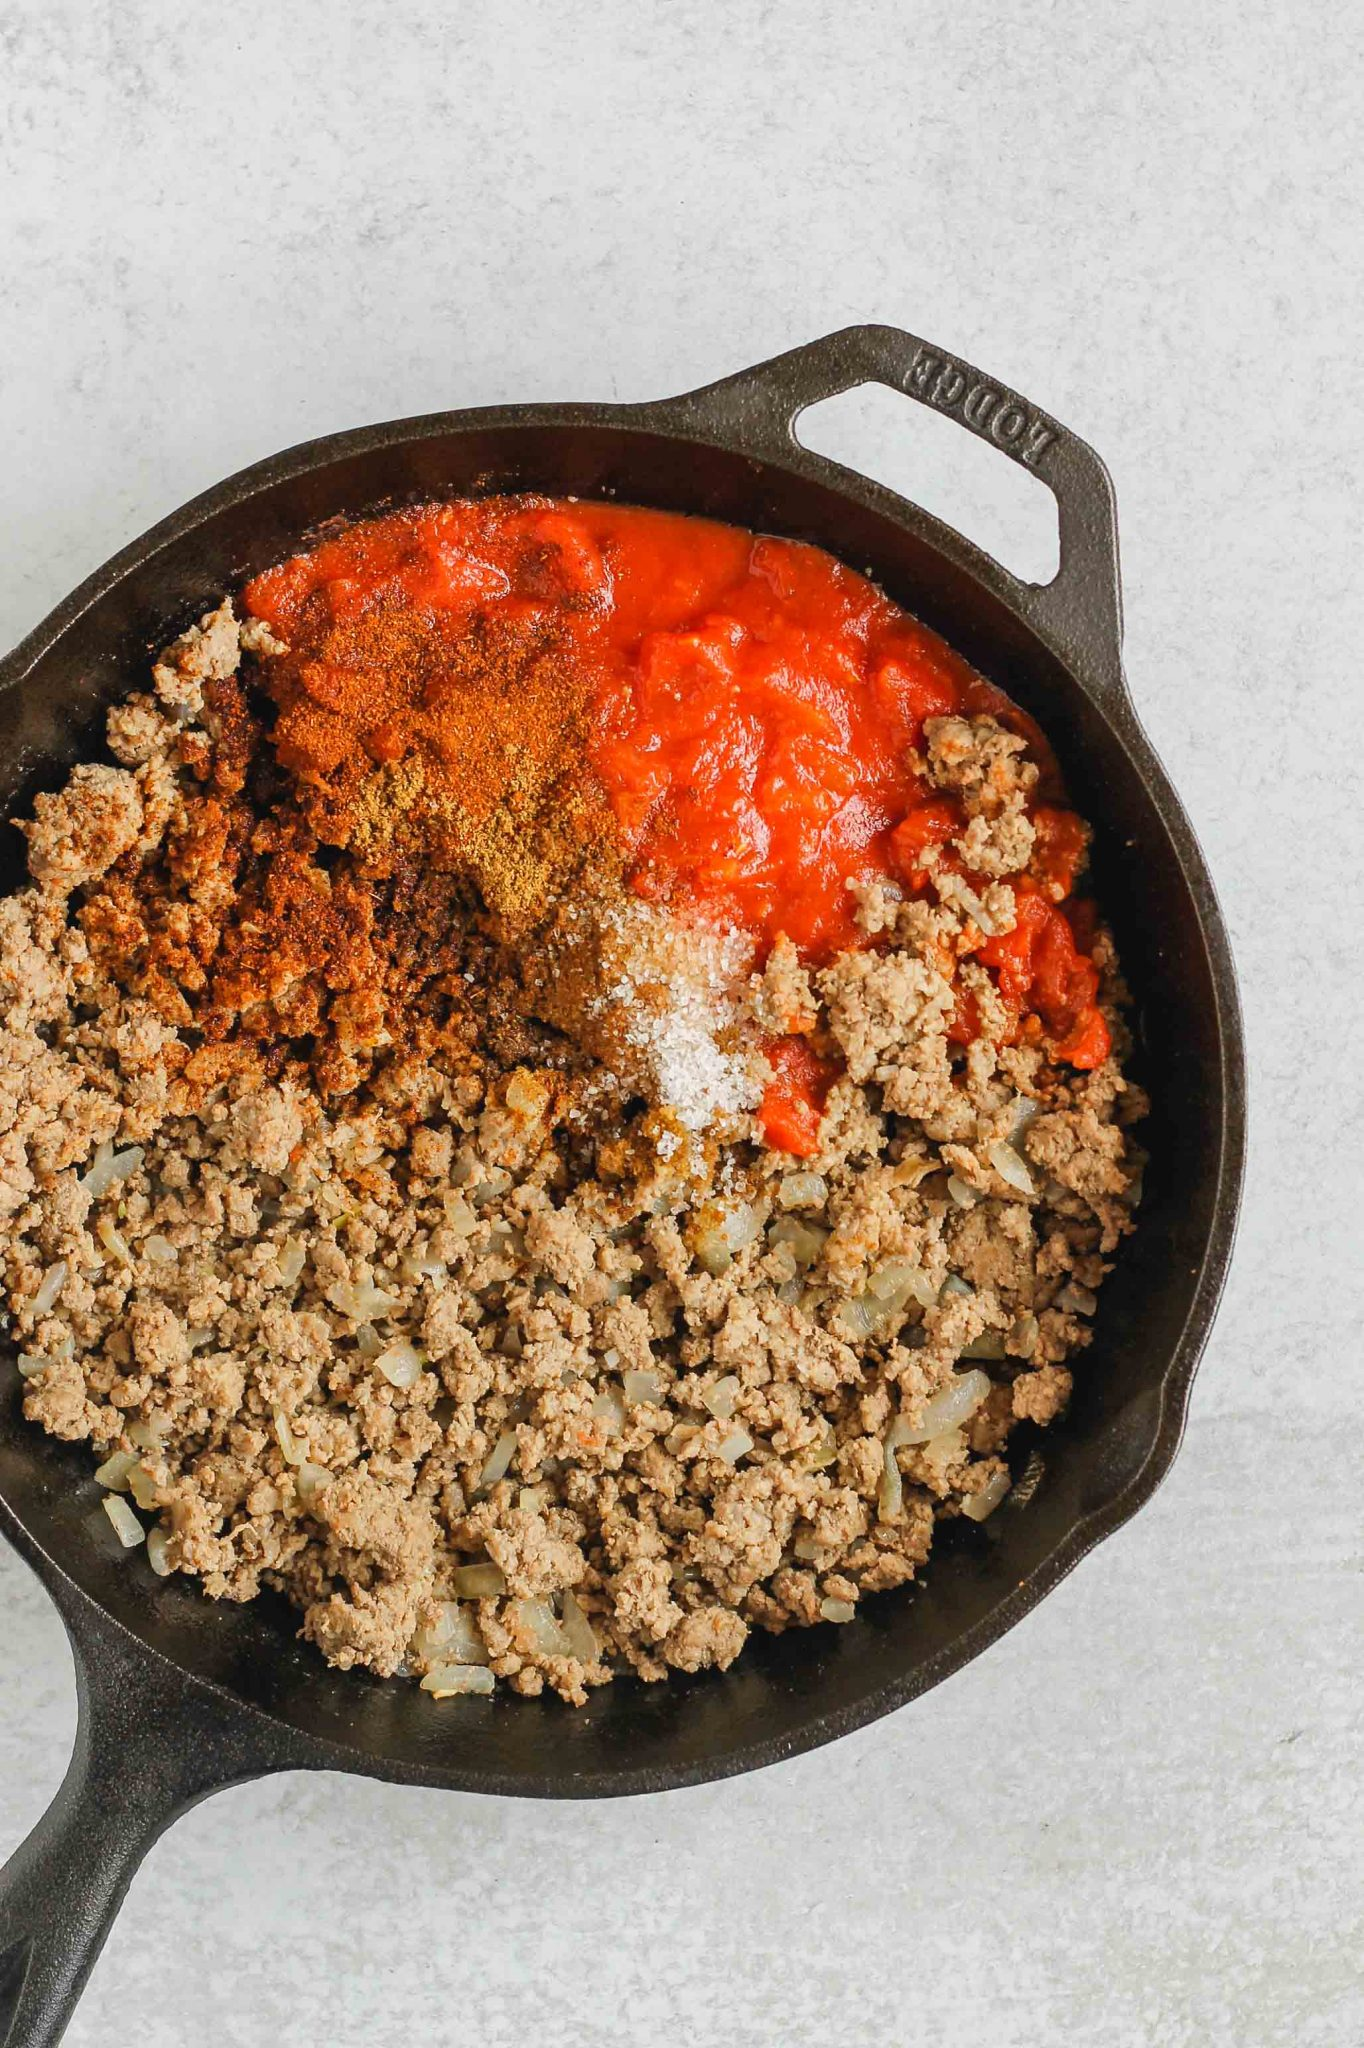 cooked ground beef, seasoning, and tomatoes in cast iron skillet before being mixed together